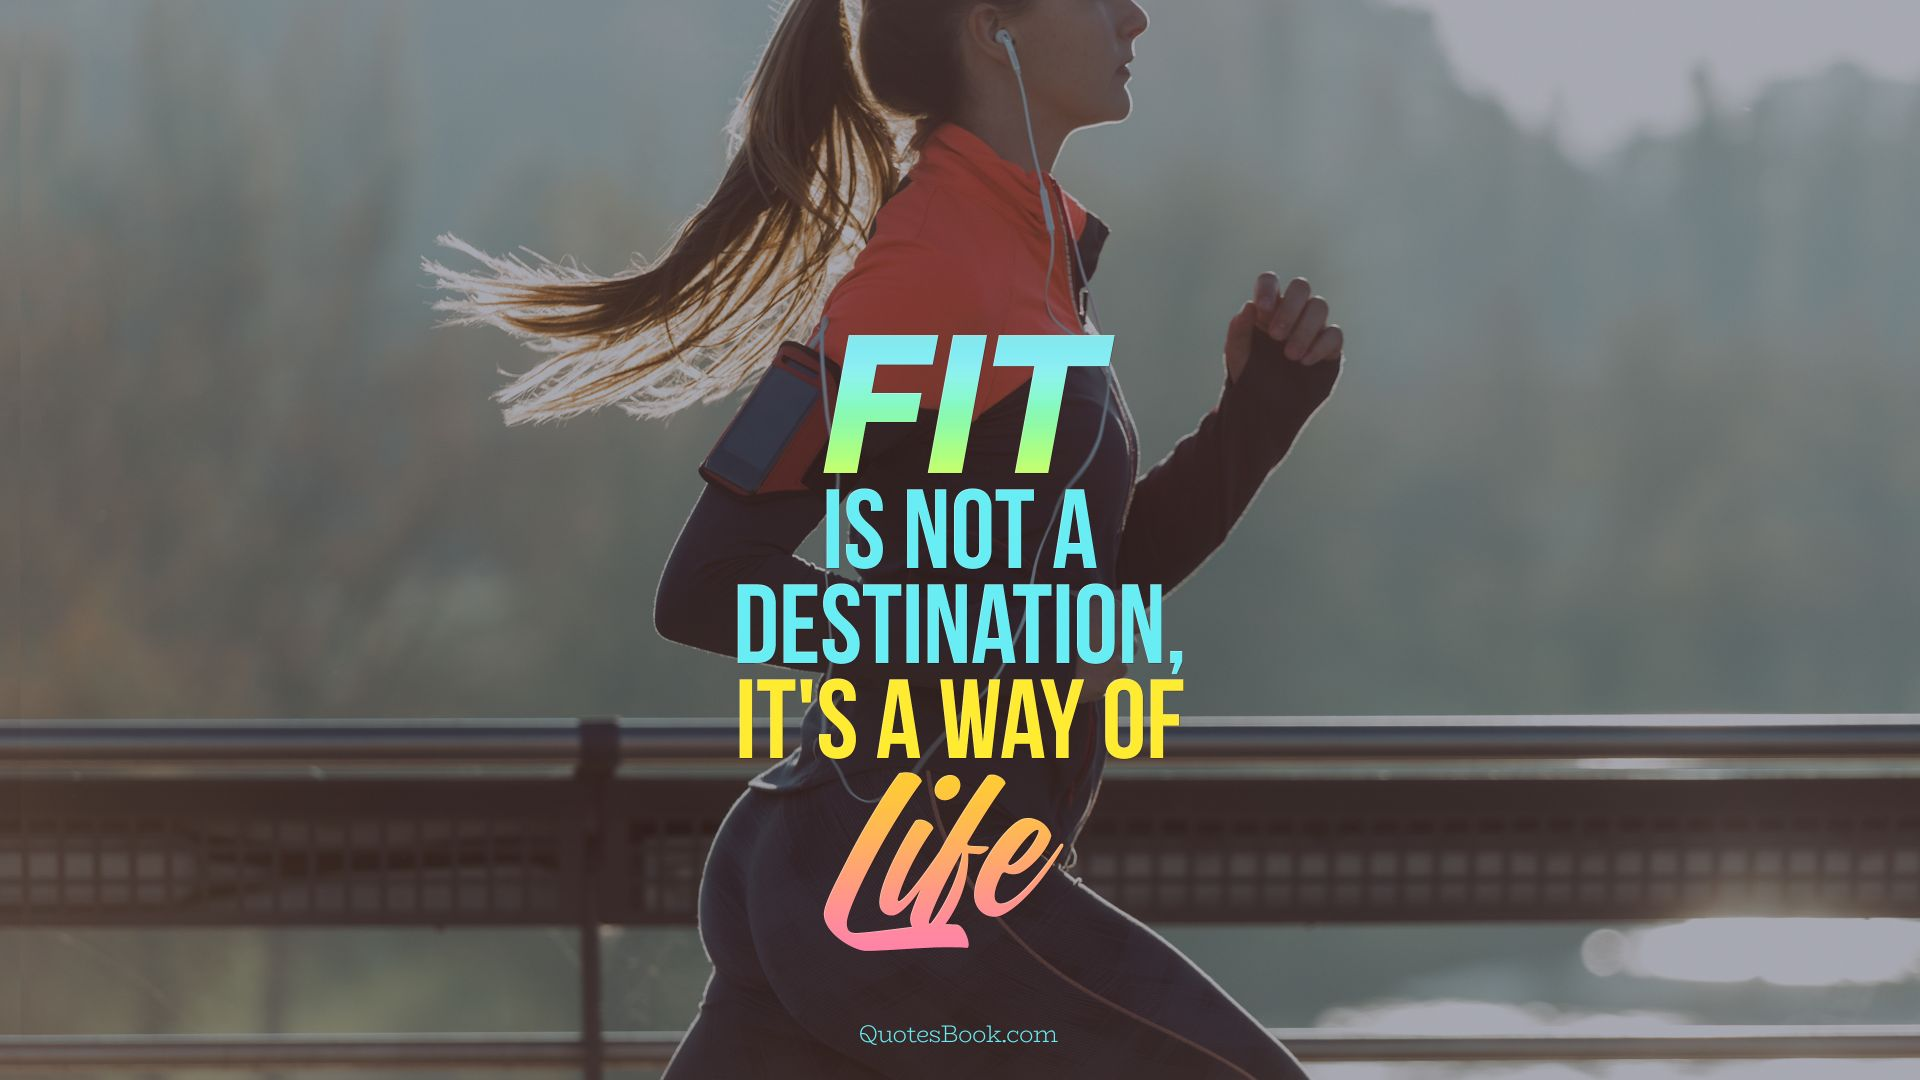 Fit is not a destination, it is a way of life